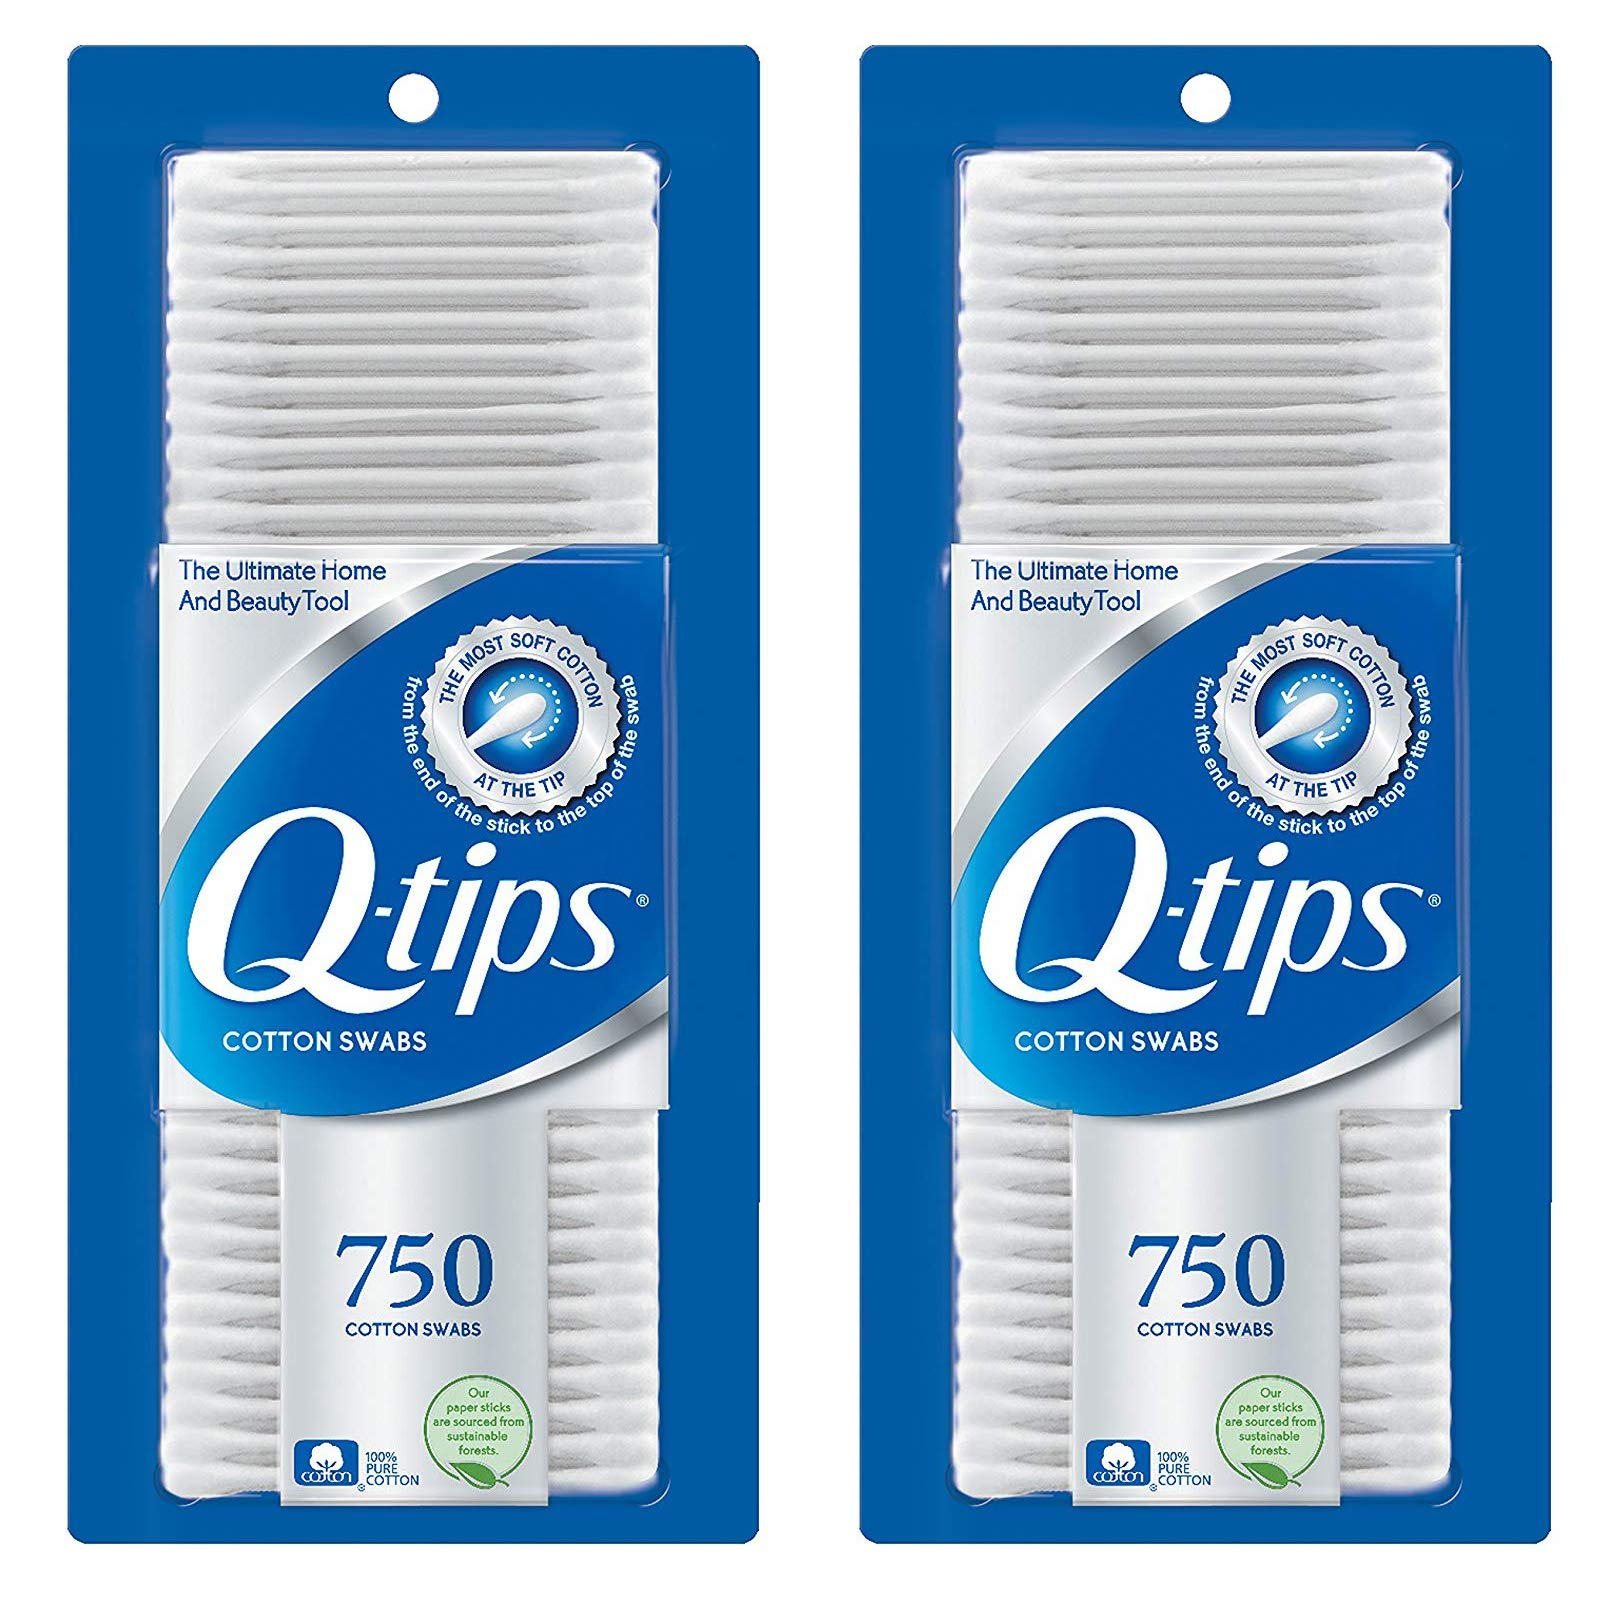 Q, Tips Cotton Swabs, 750 ct., 2 Pack